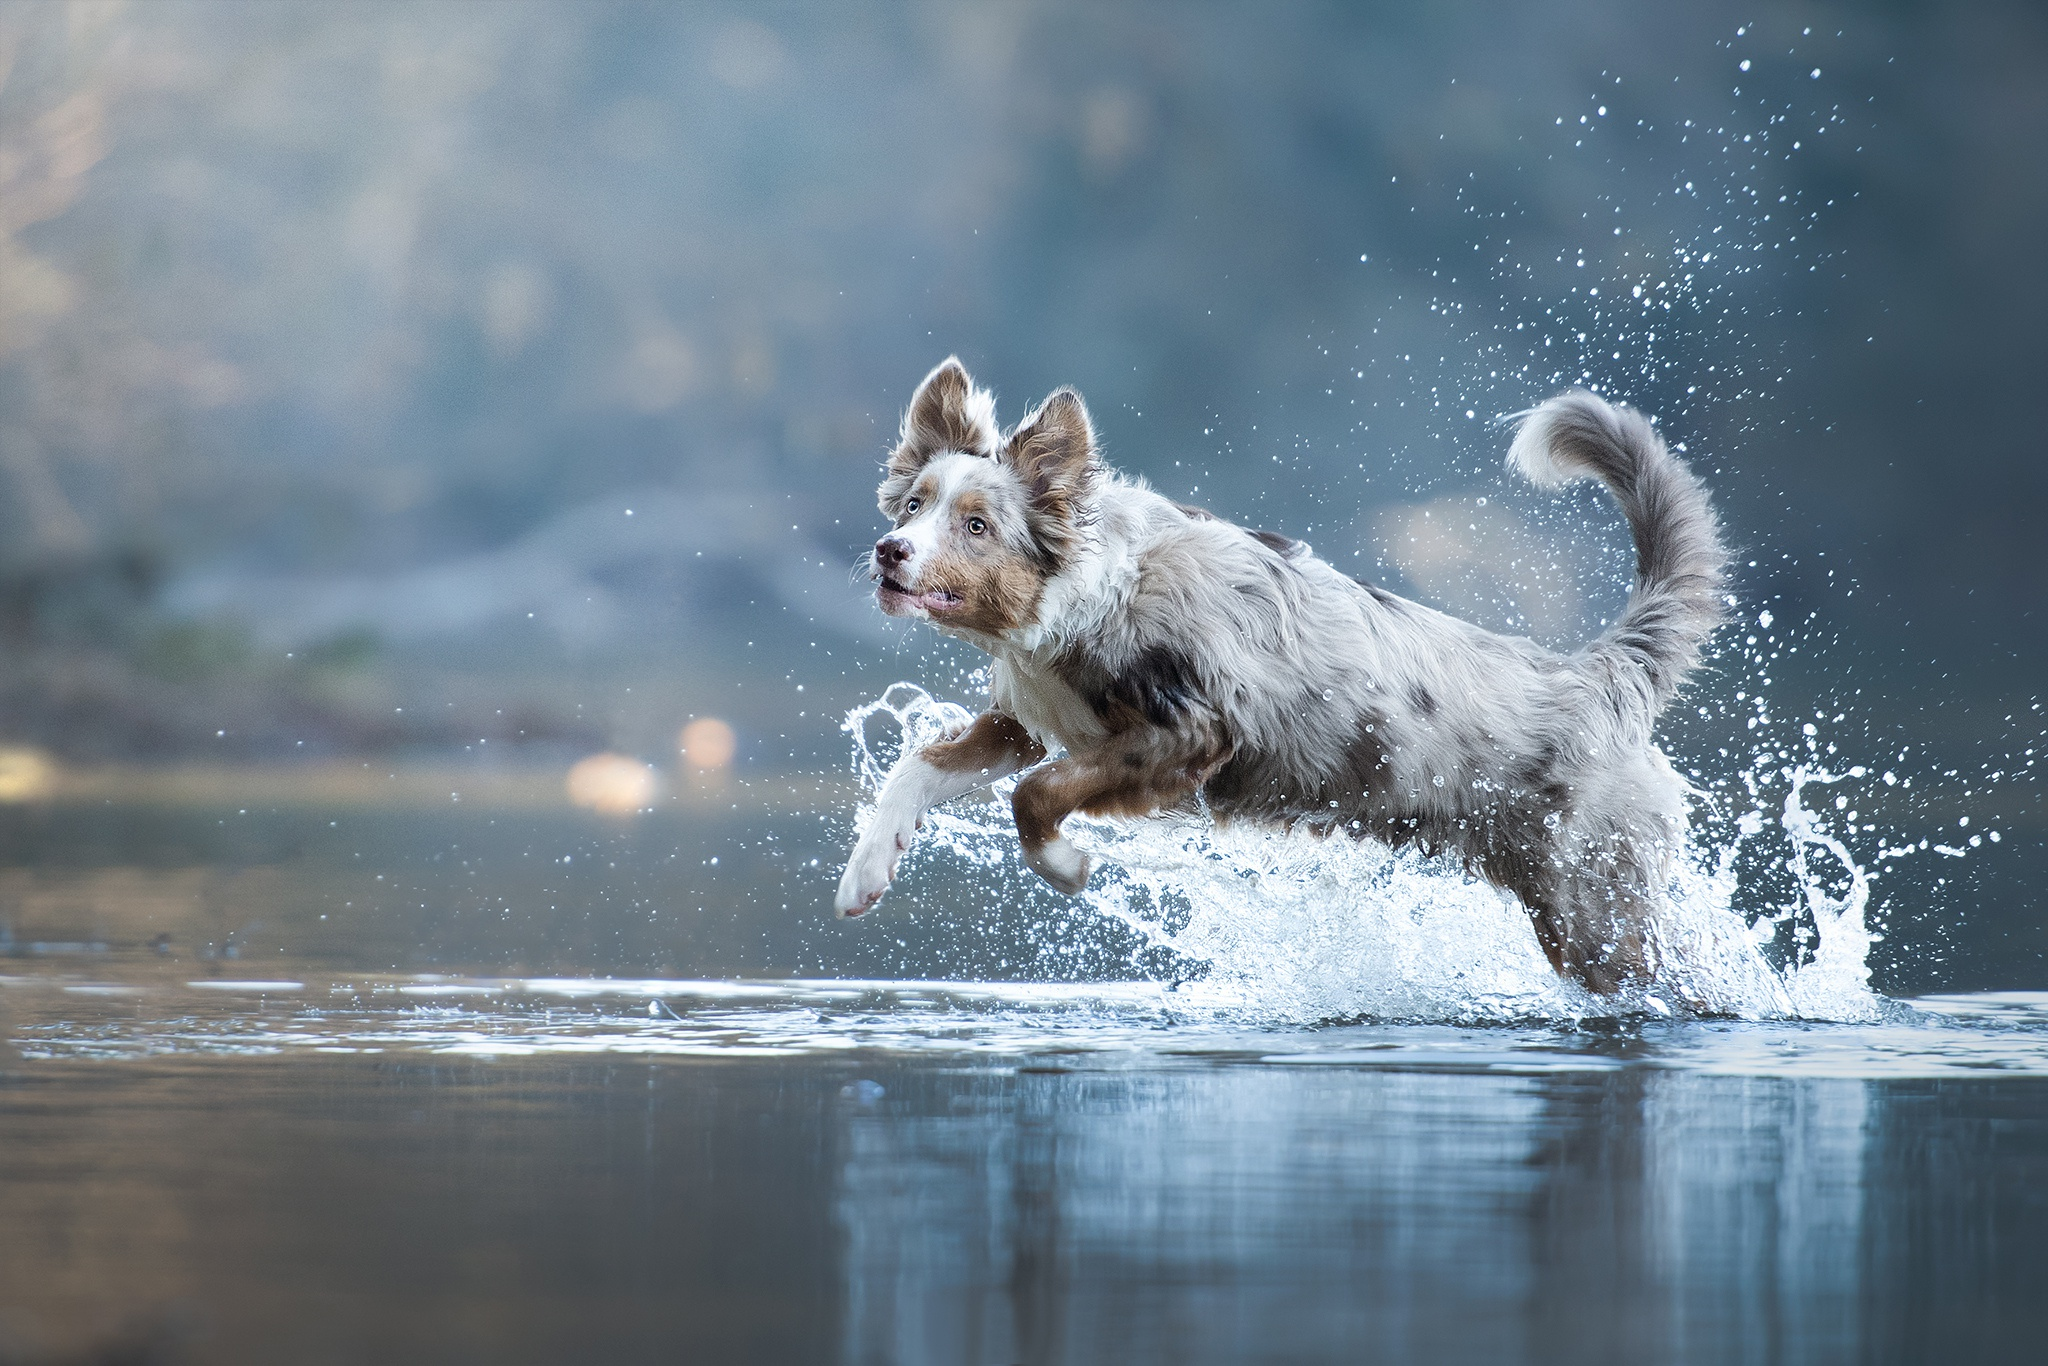 Dog Animals Mammals Outdoors Water In Water Jumping Nature 2048x1366